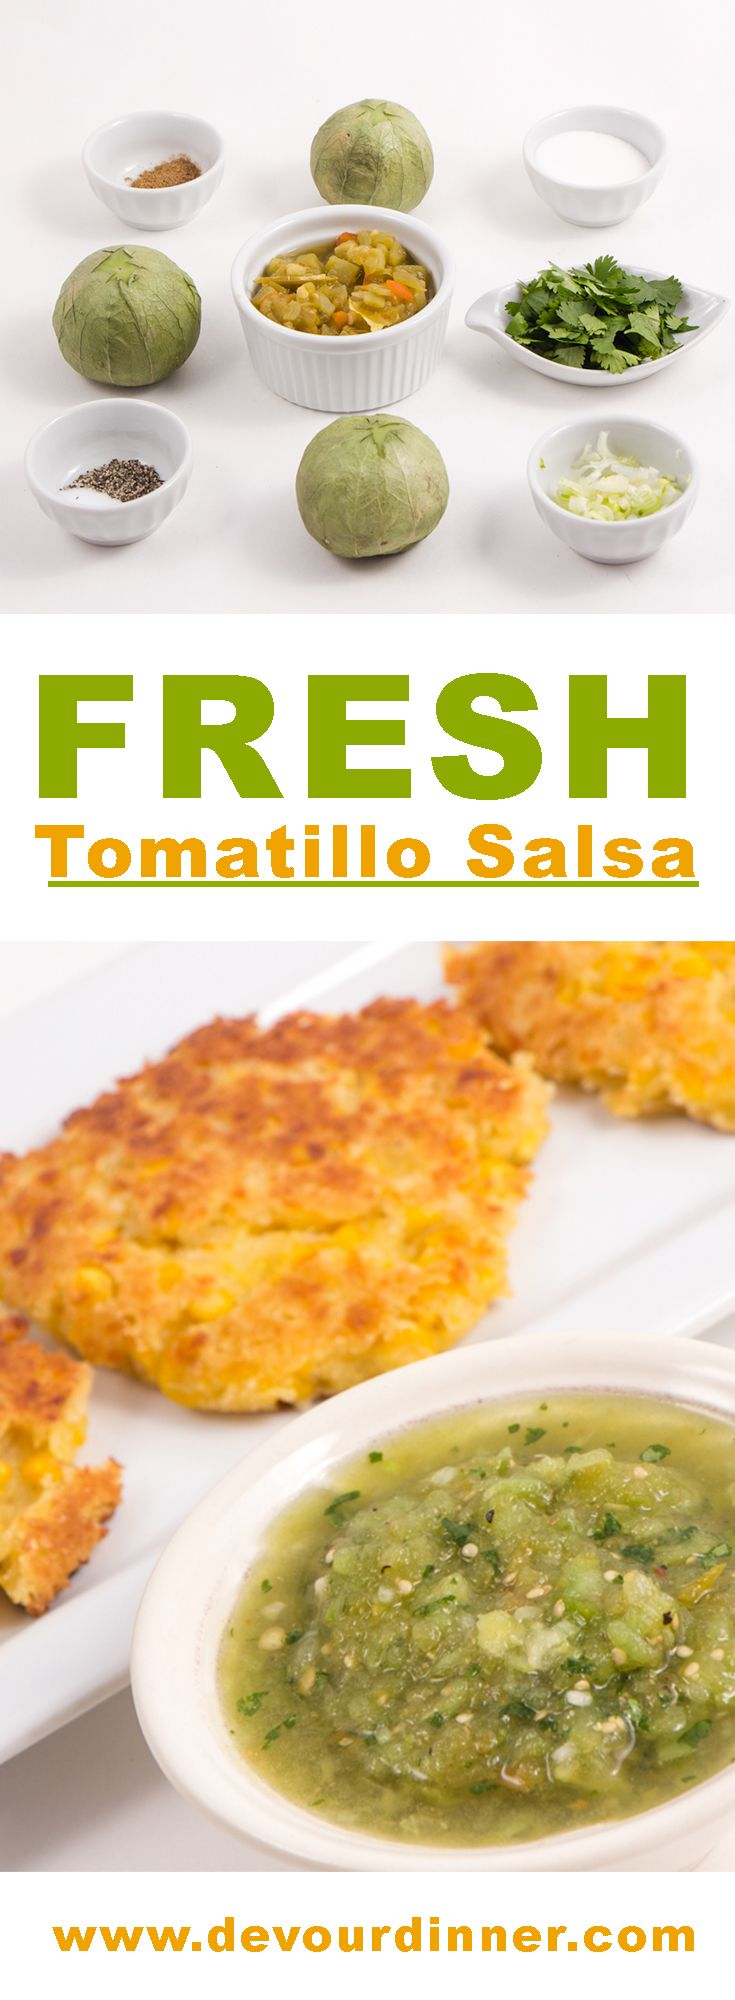 Tomatillo Salsa - Devour Dinner.  Sweet and packed full of flavor is Tomatillo Salsa.  This salsa is perfect on any Mexican Recipe but especially delicious on Sweet Corn Cakes.  Easy recipe will having you coming back for more!